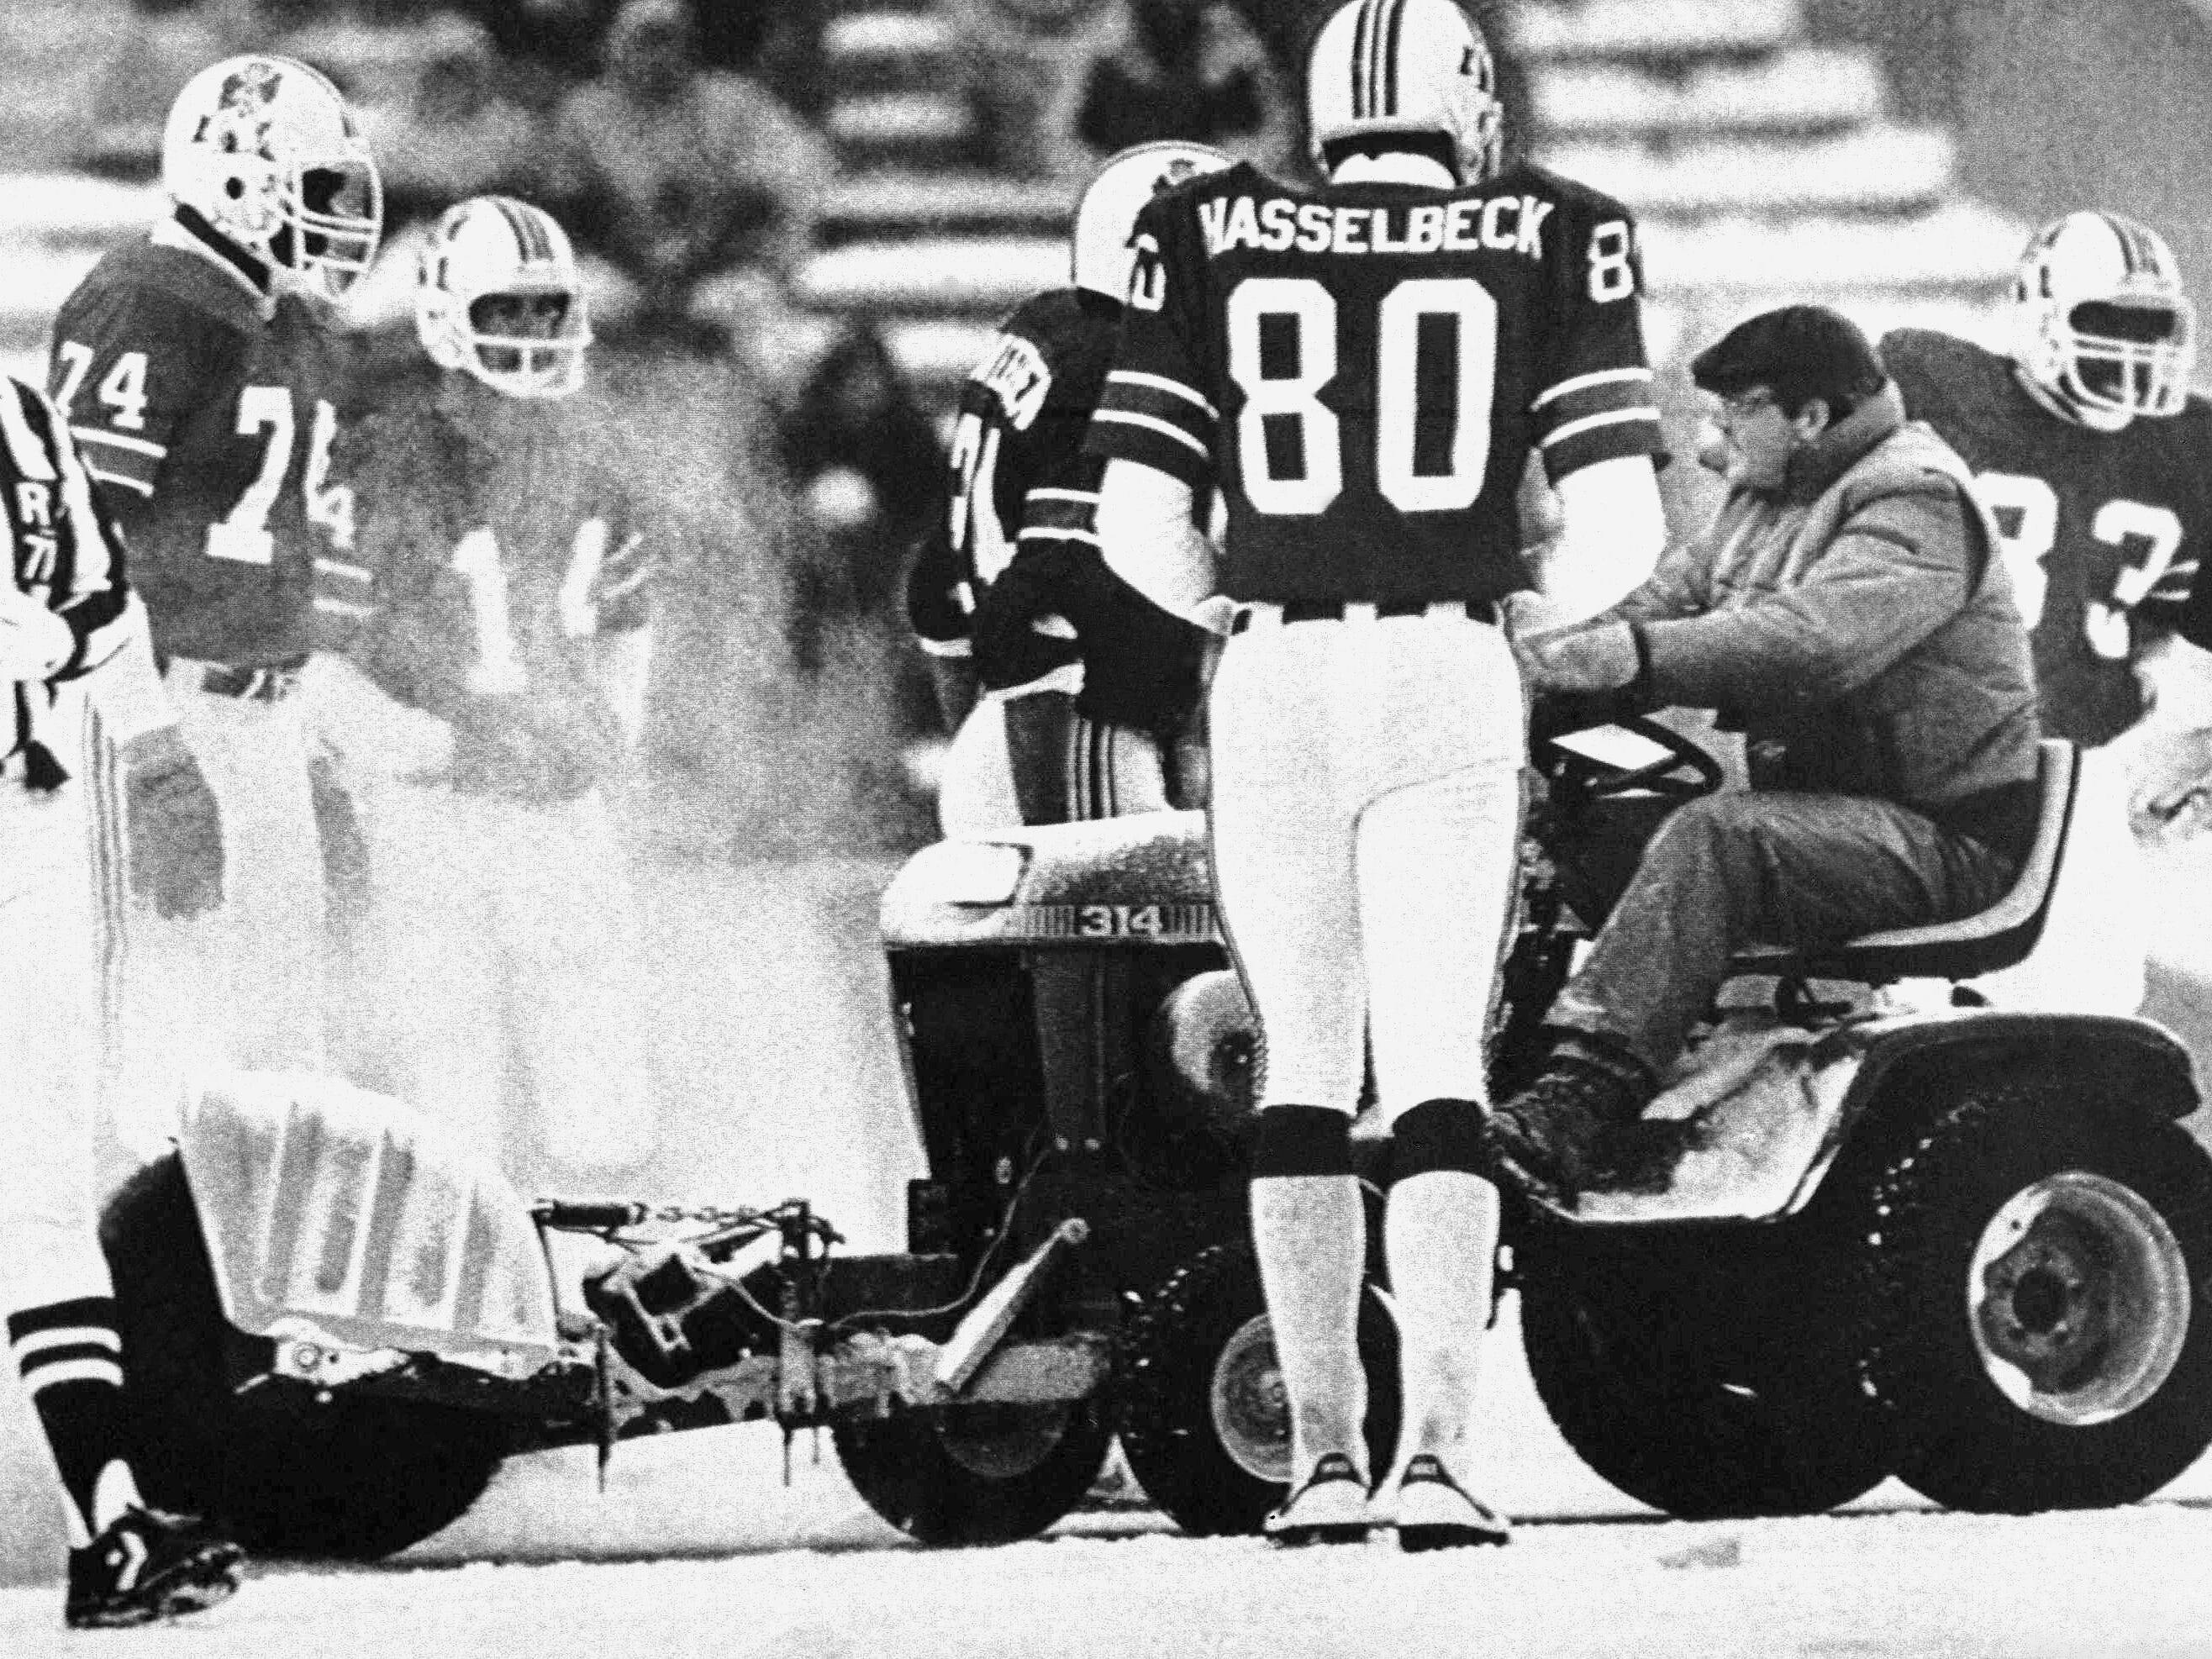 Dec. 12, 1982: A worker at Schaefer Stadium in Foxboro drives a tractor  to clear the snow away while members of the New England Patriots watch during a game against the Miami Dolphins. The Patriots won the game, 3-0.